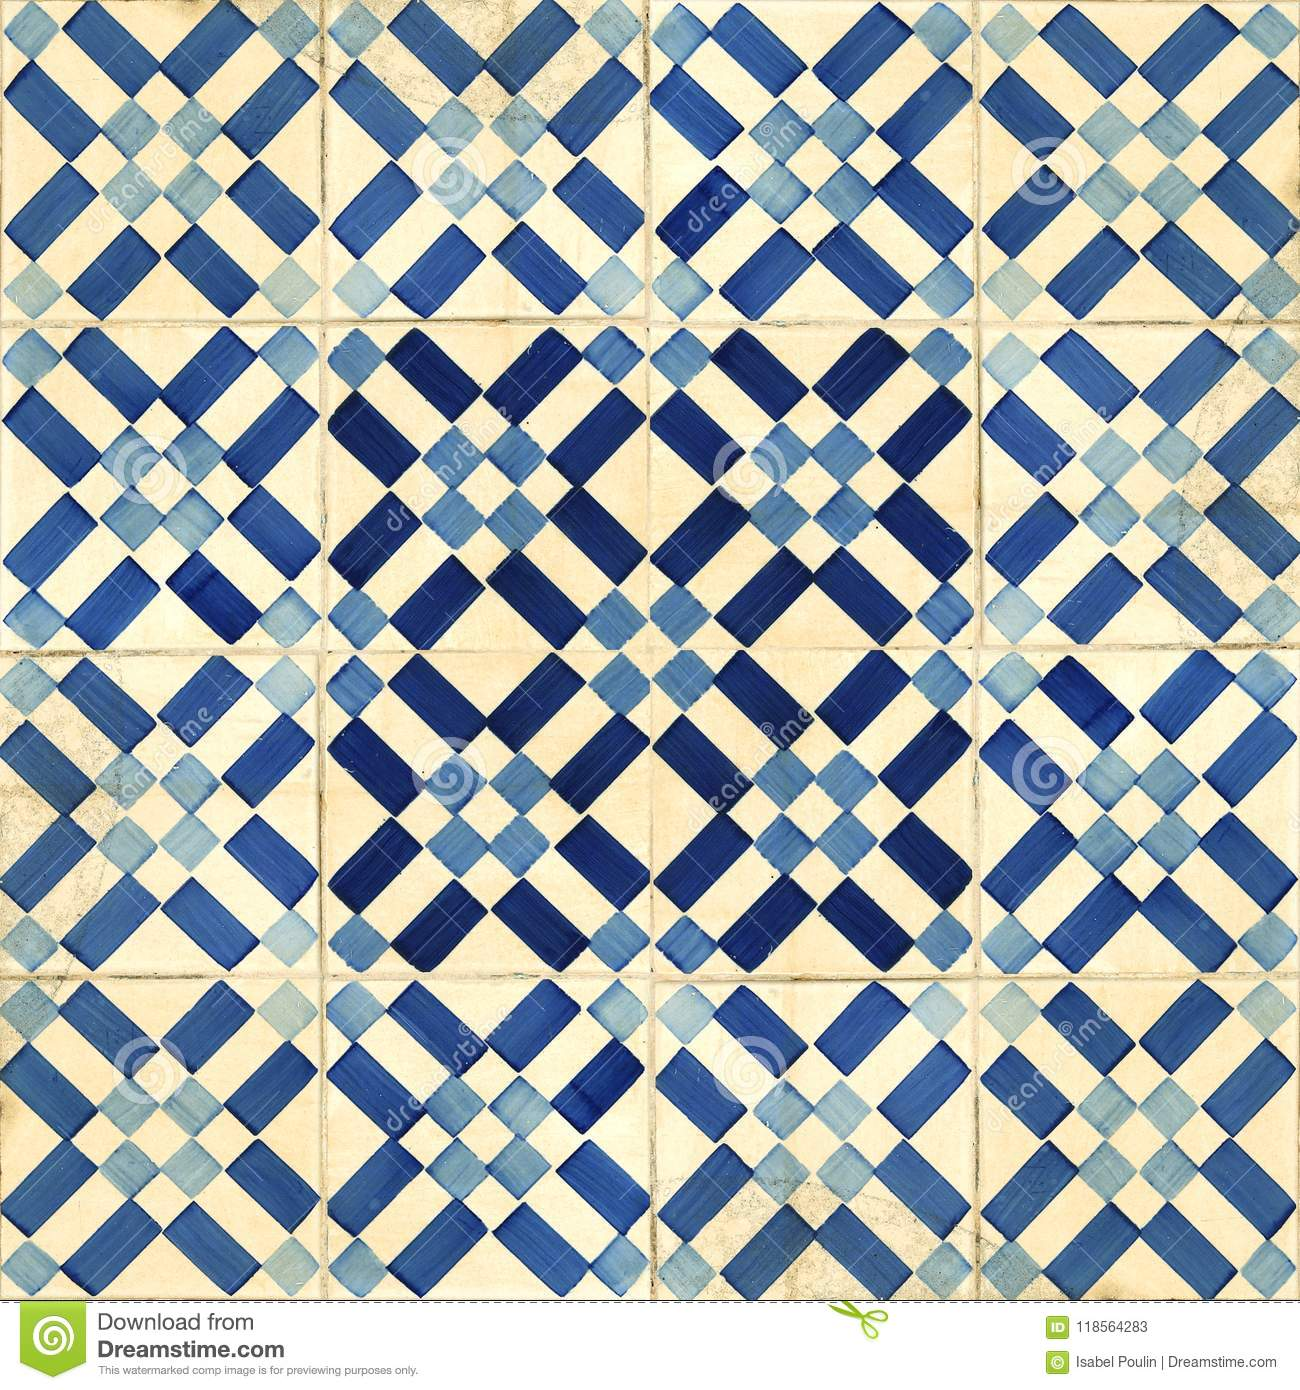 Collection Of Blue Patterns Tiles Stock Image - Image of mosaic ...